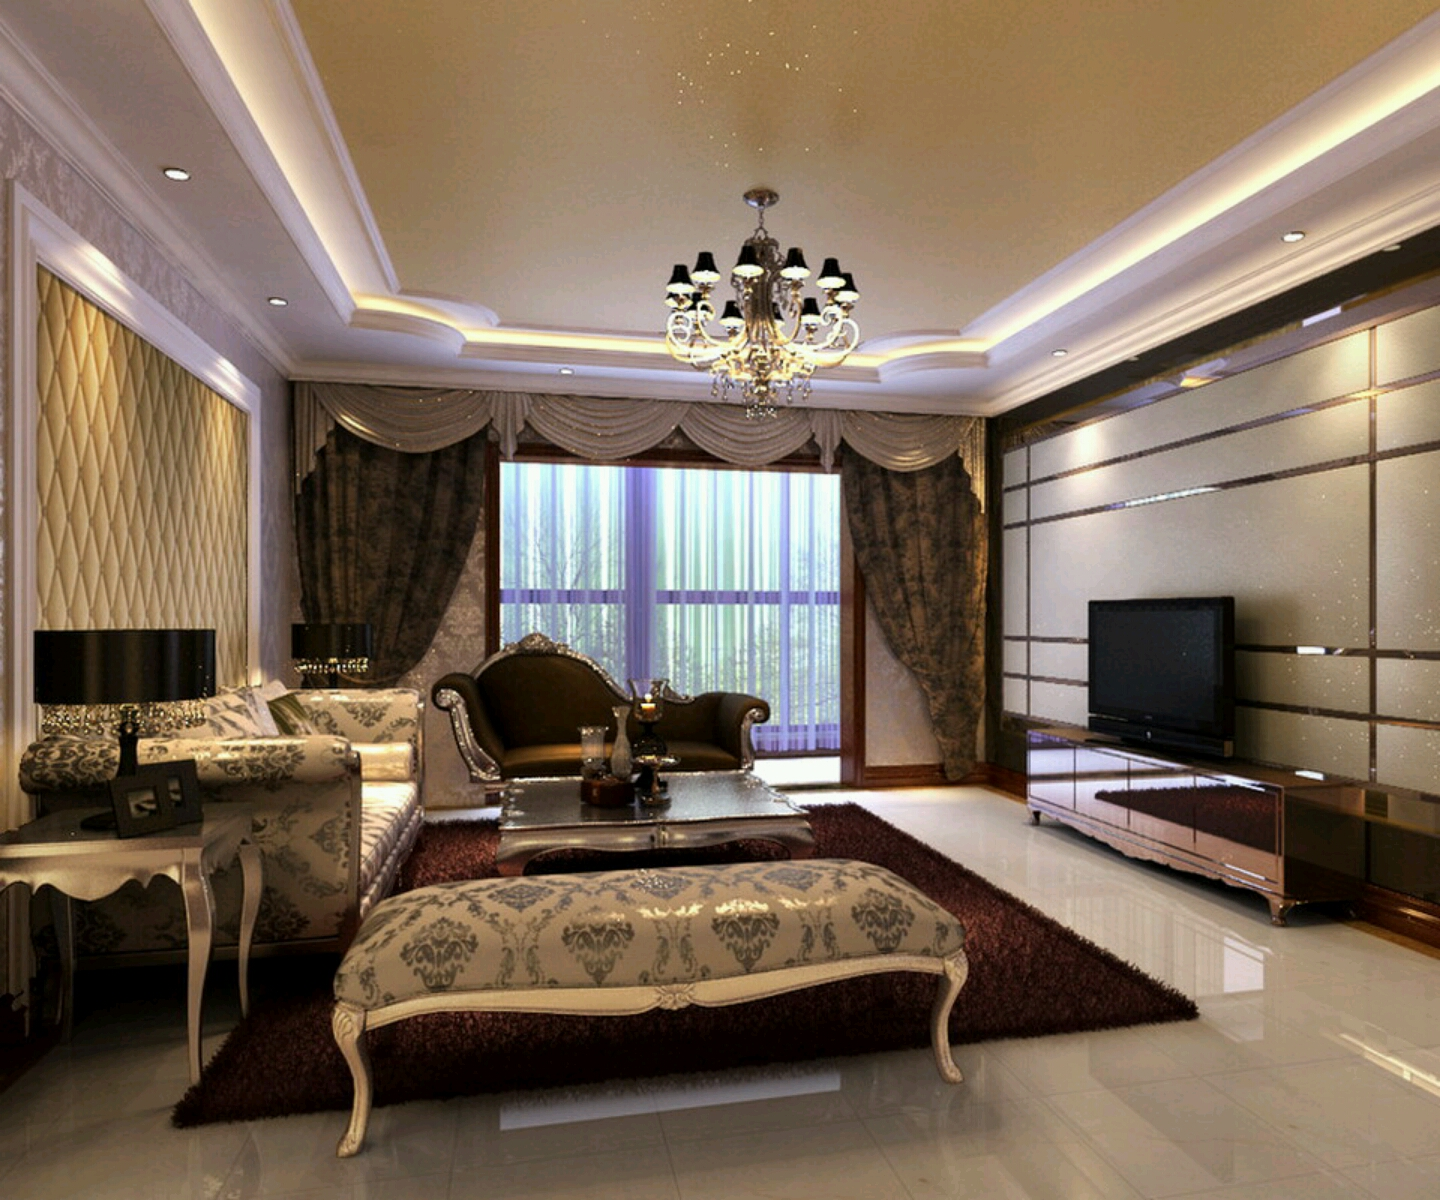 Interior decorating ideas living rooms dream house for Interior decorative items for home